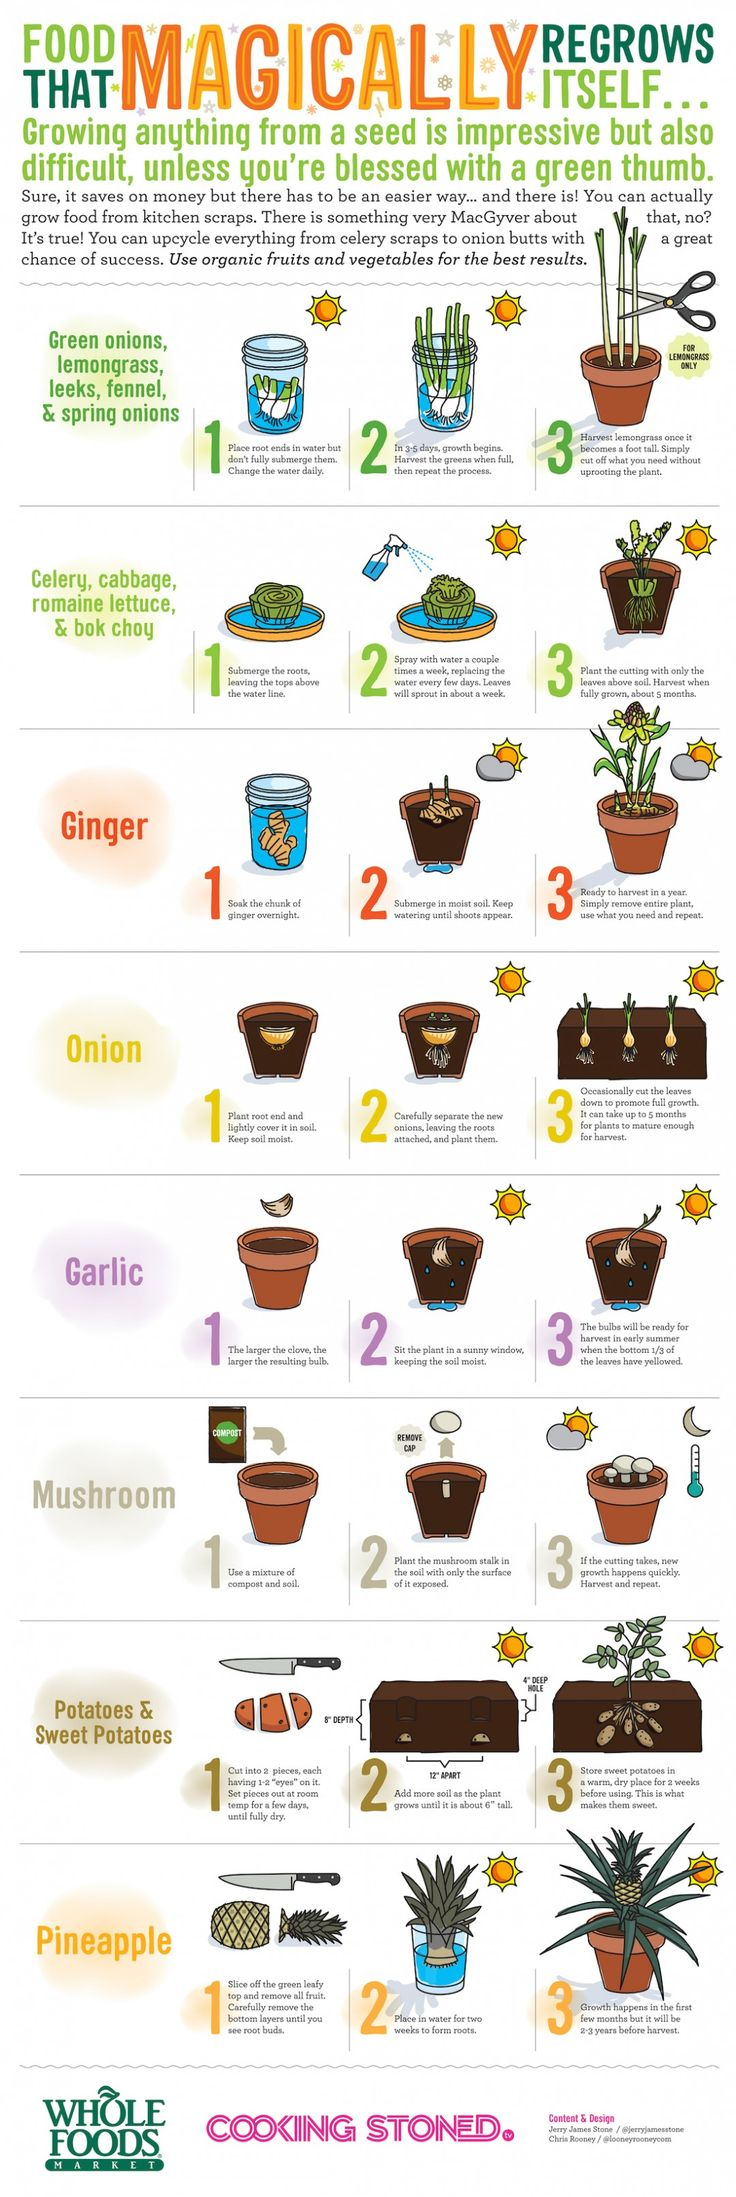 want to grow your own veggies heres some that regrow themselves